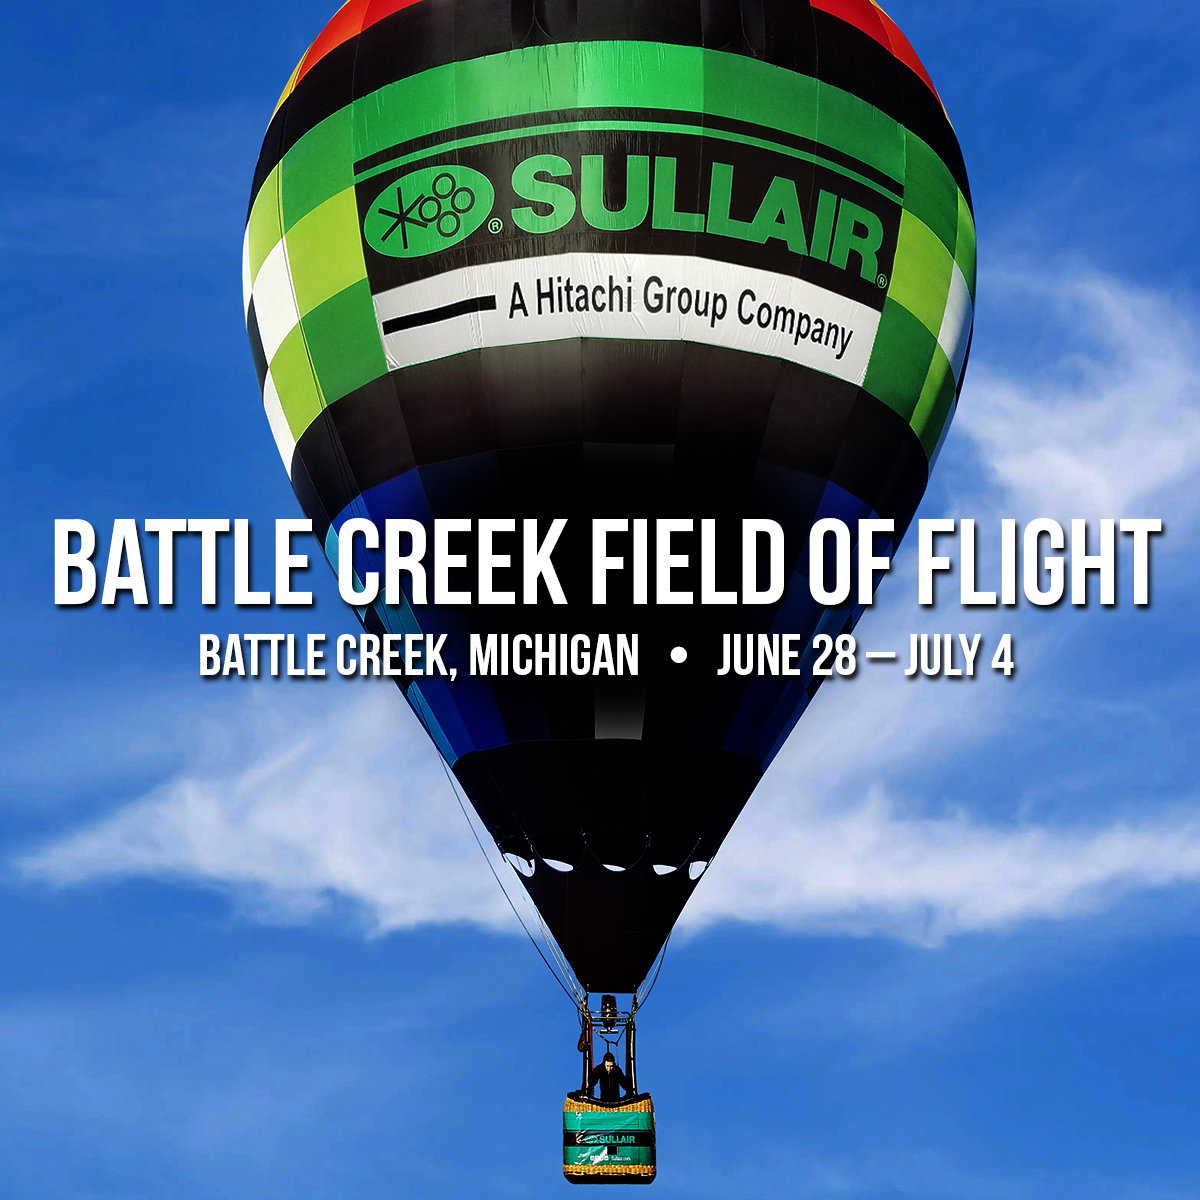 Sullair Balloon at Battle Creek Field of Flight